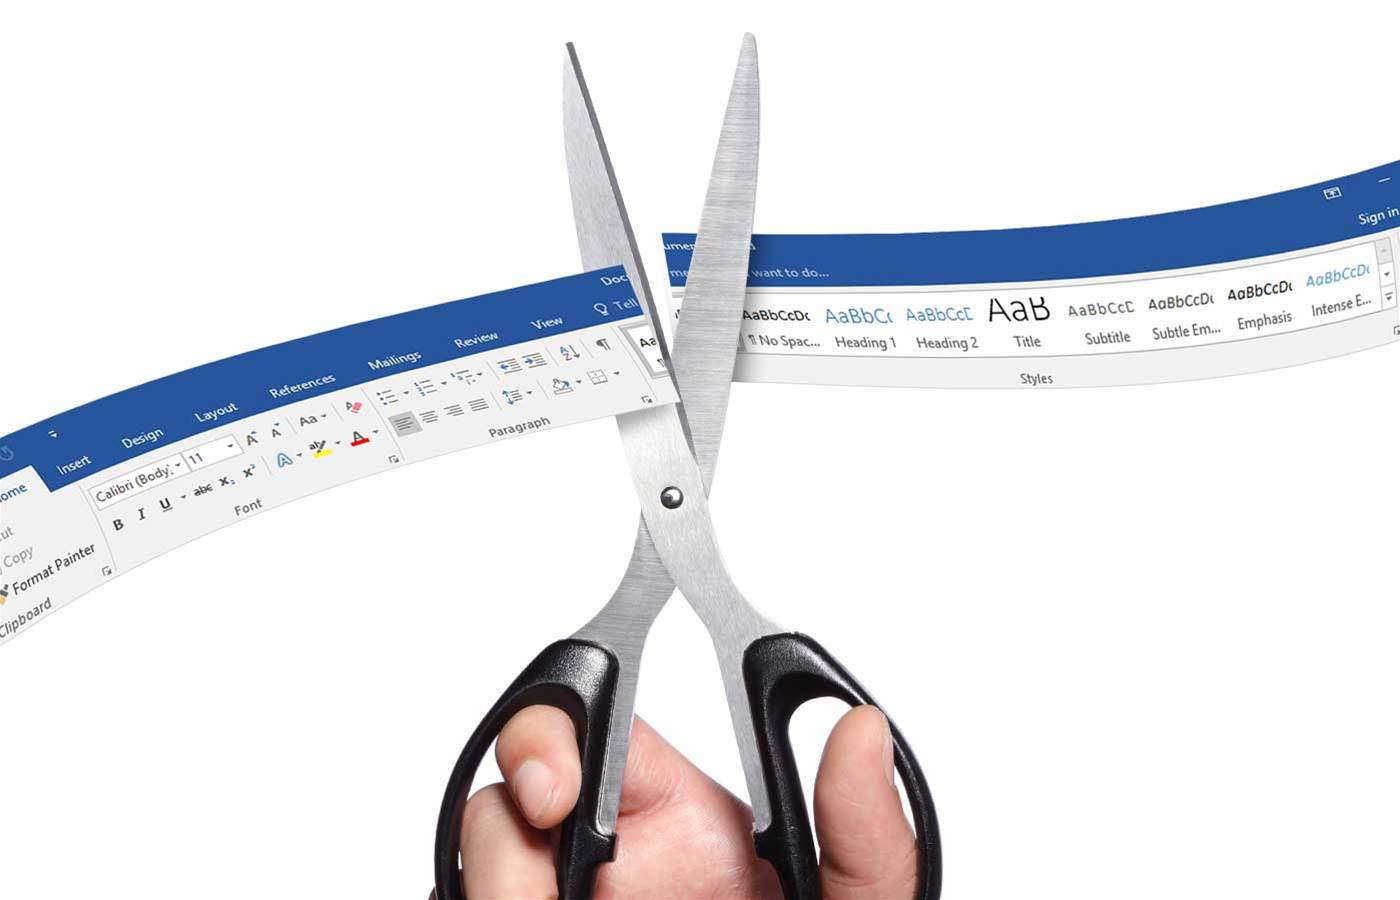 A ribbon-cutting for Microsoft's new Office online feature